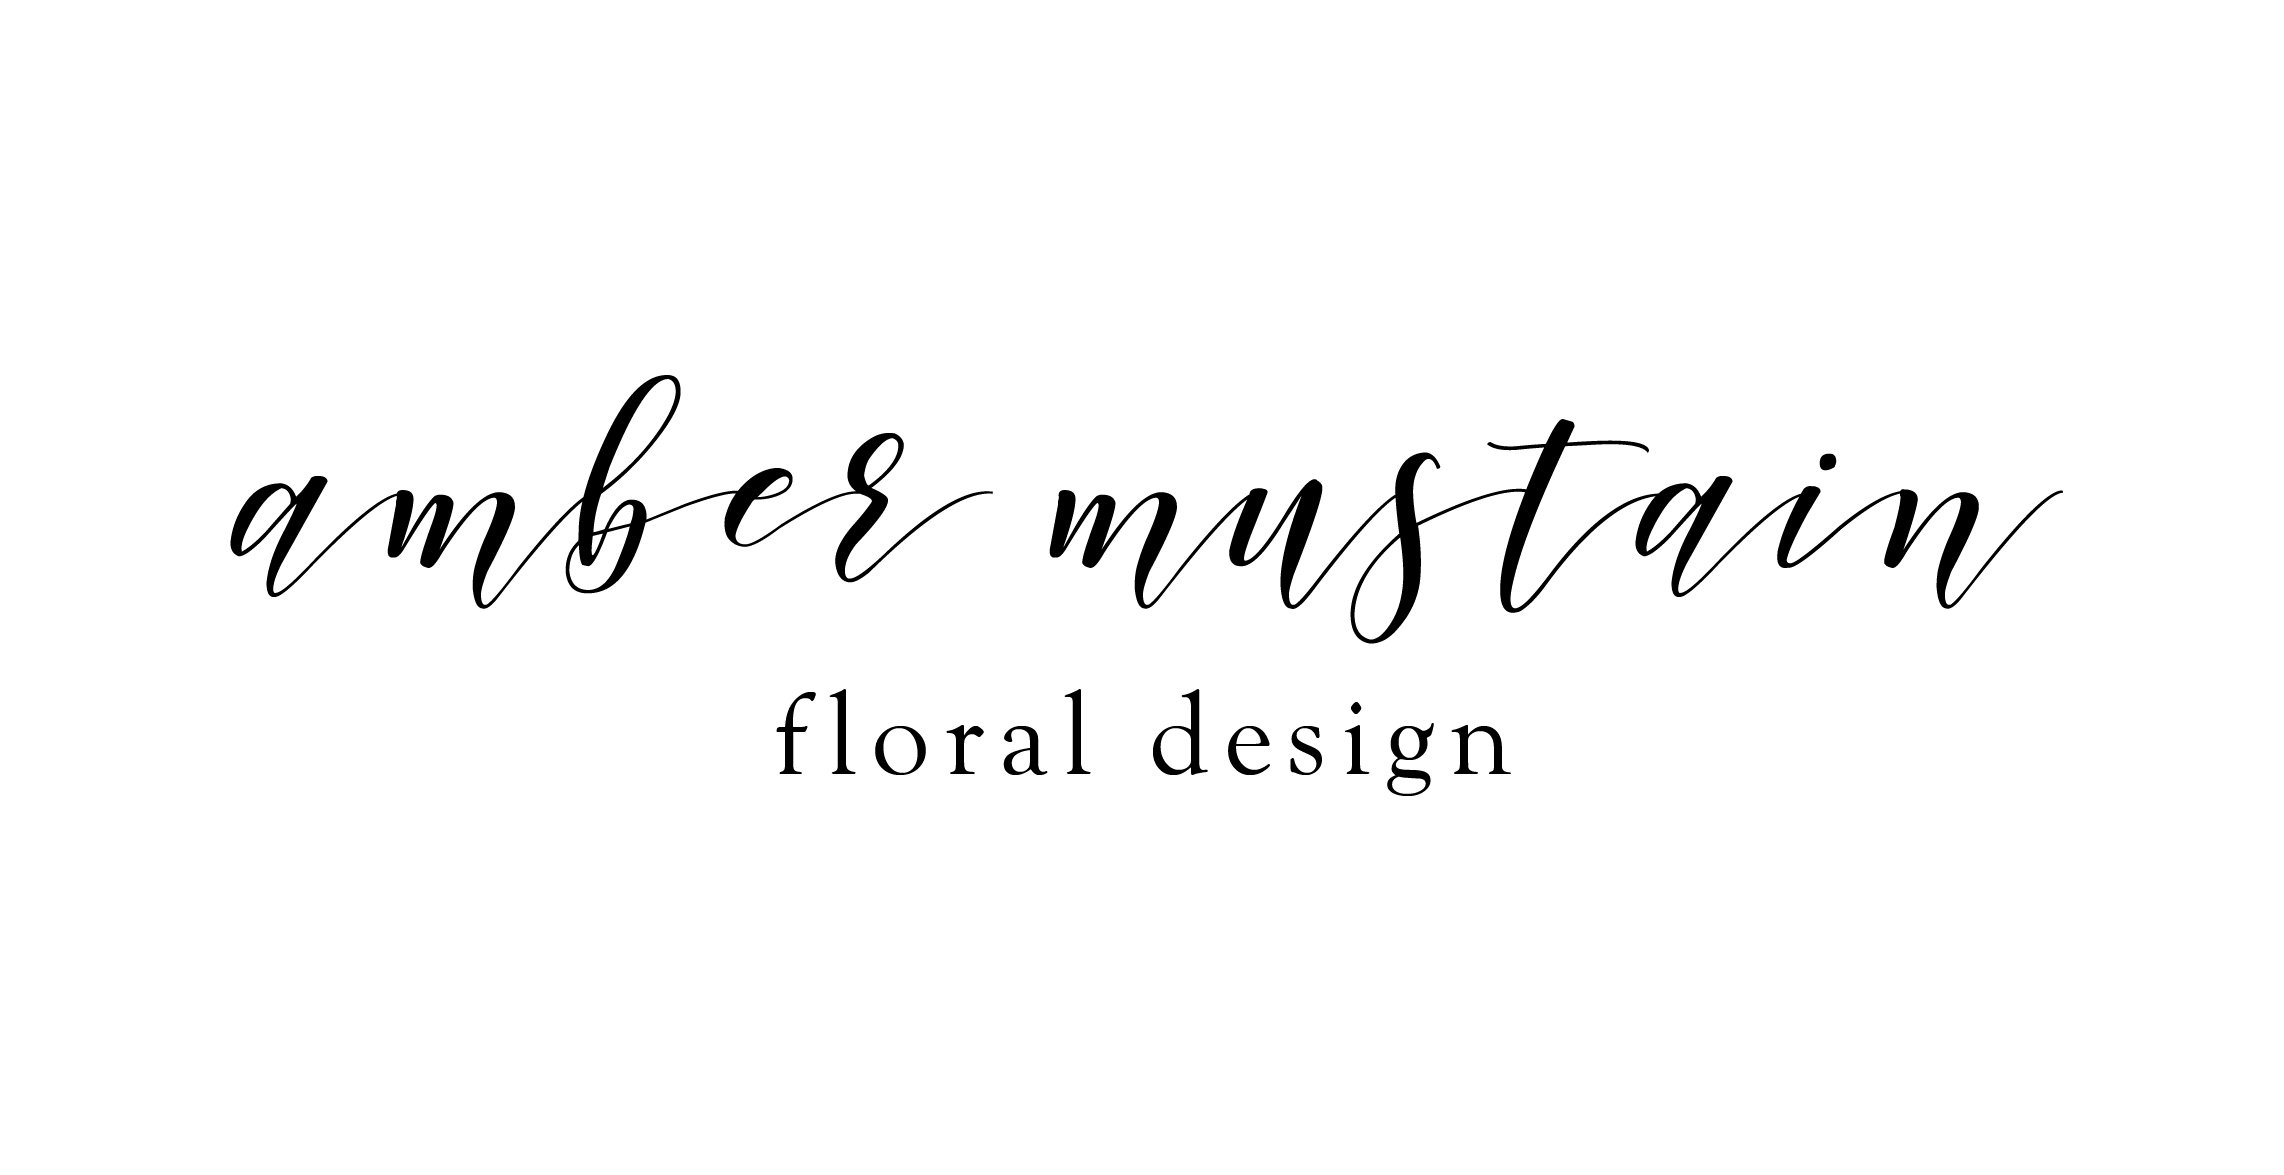 Amber Mustain Floral Design